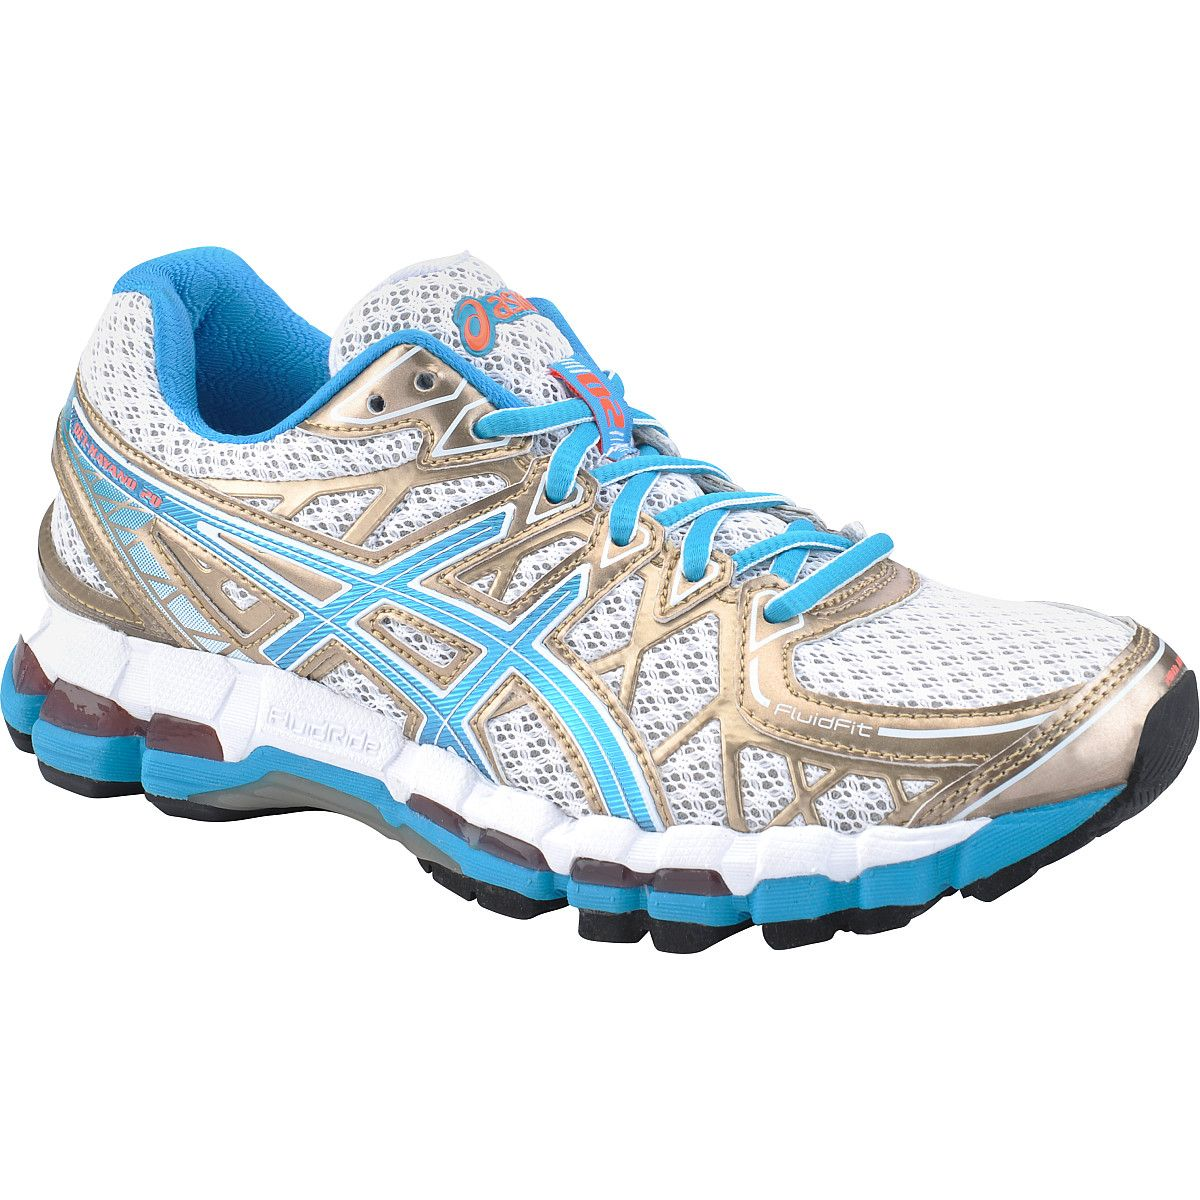 In love with my ASICS Women's GEL-Kayano 20 Running Shoes -  SportsAuthority.com